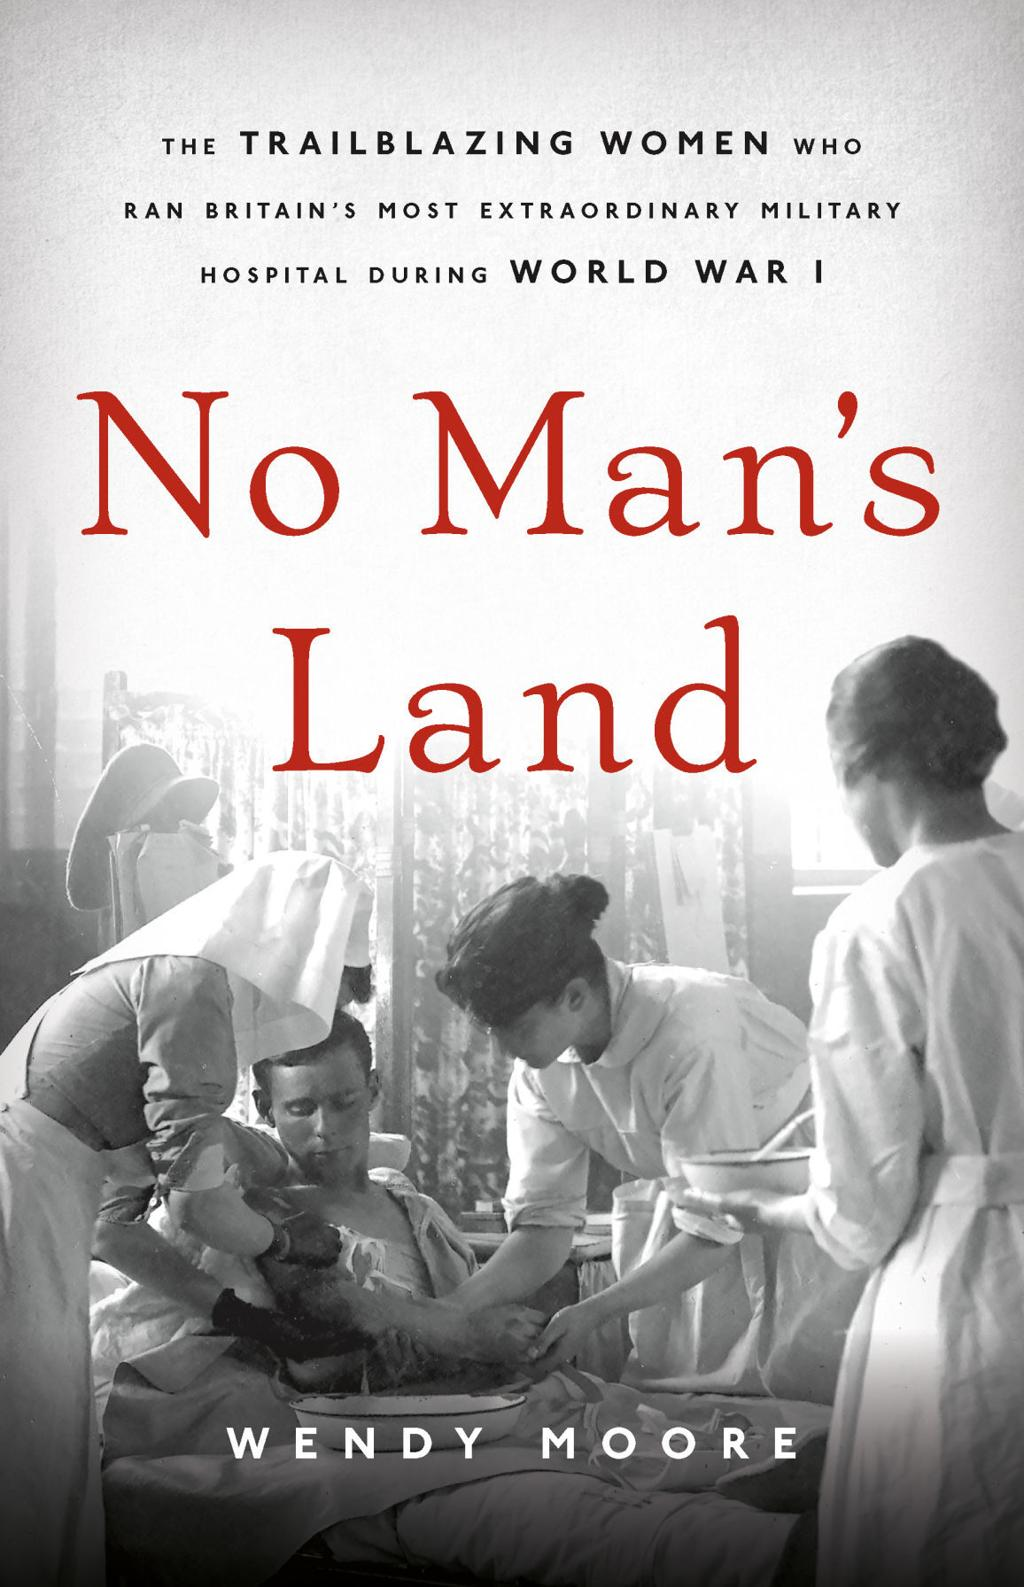 No Man's Land: The Trailblazing Women Who Ran Britain's Most Extraordinary Military Hospital During World War I